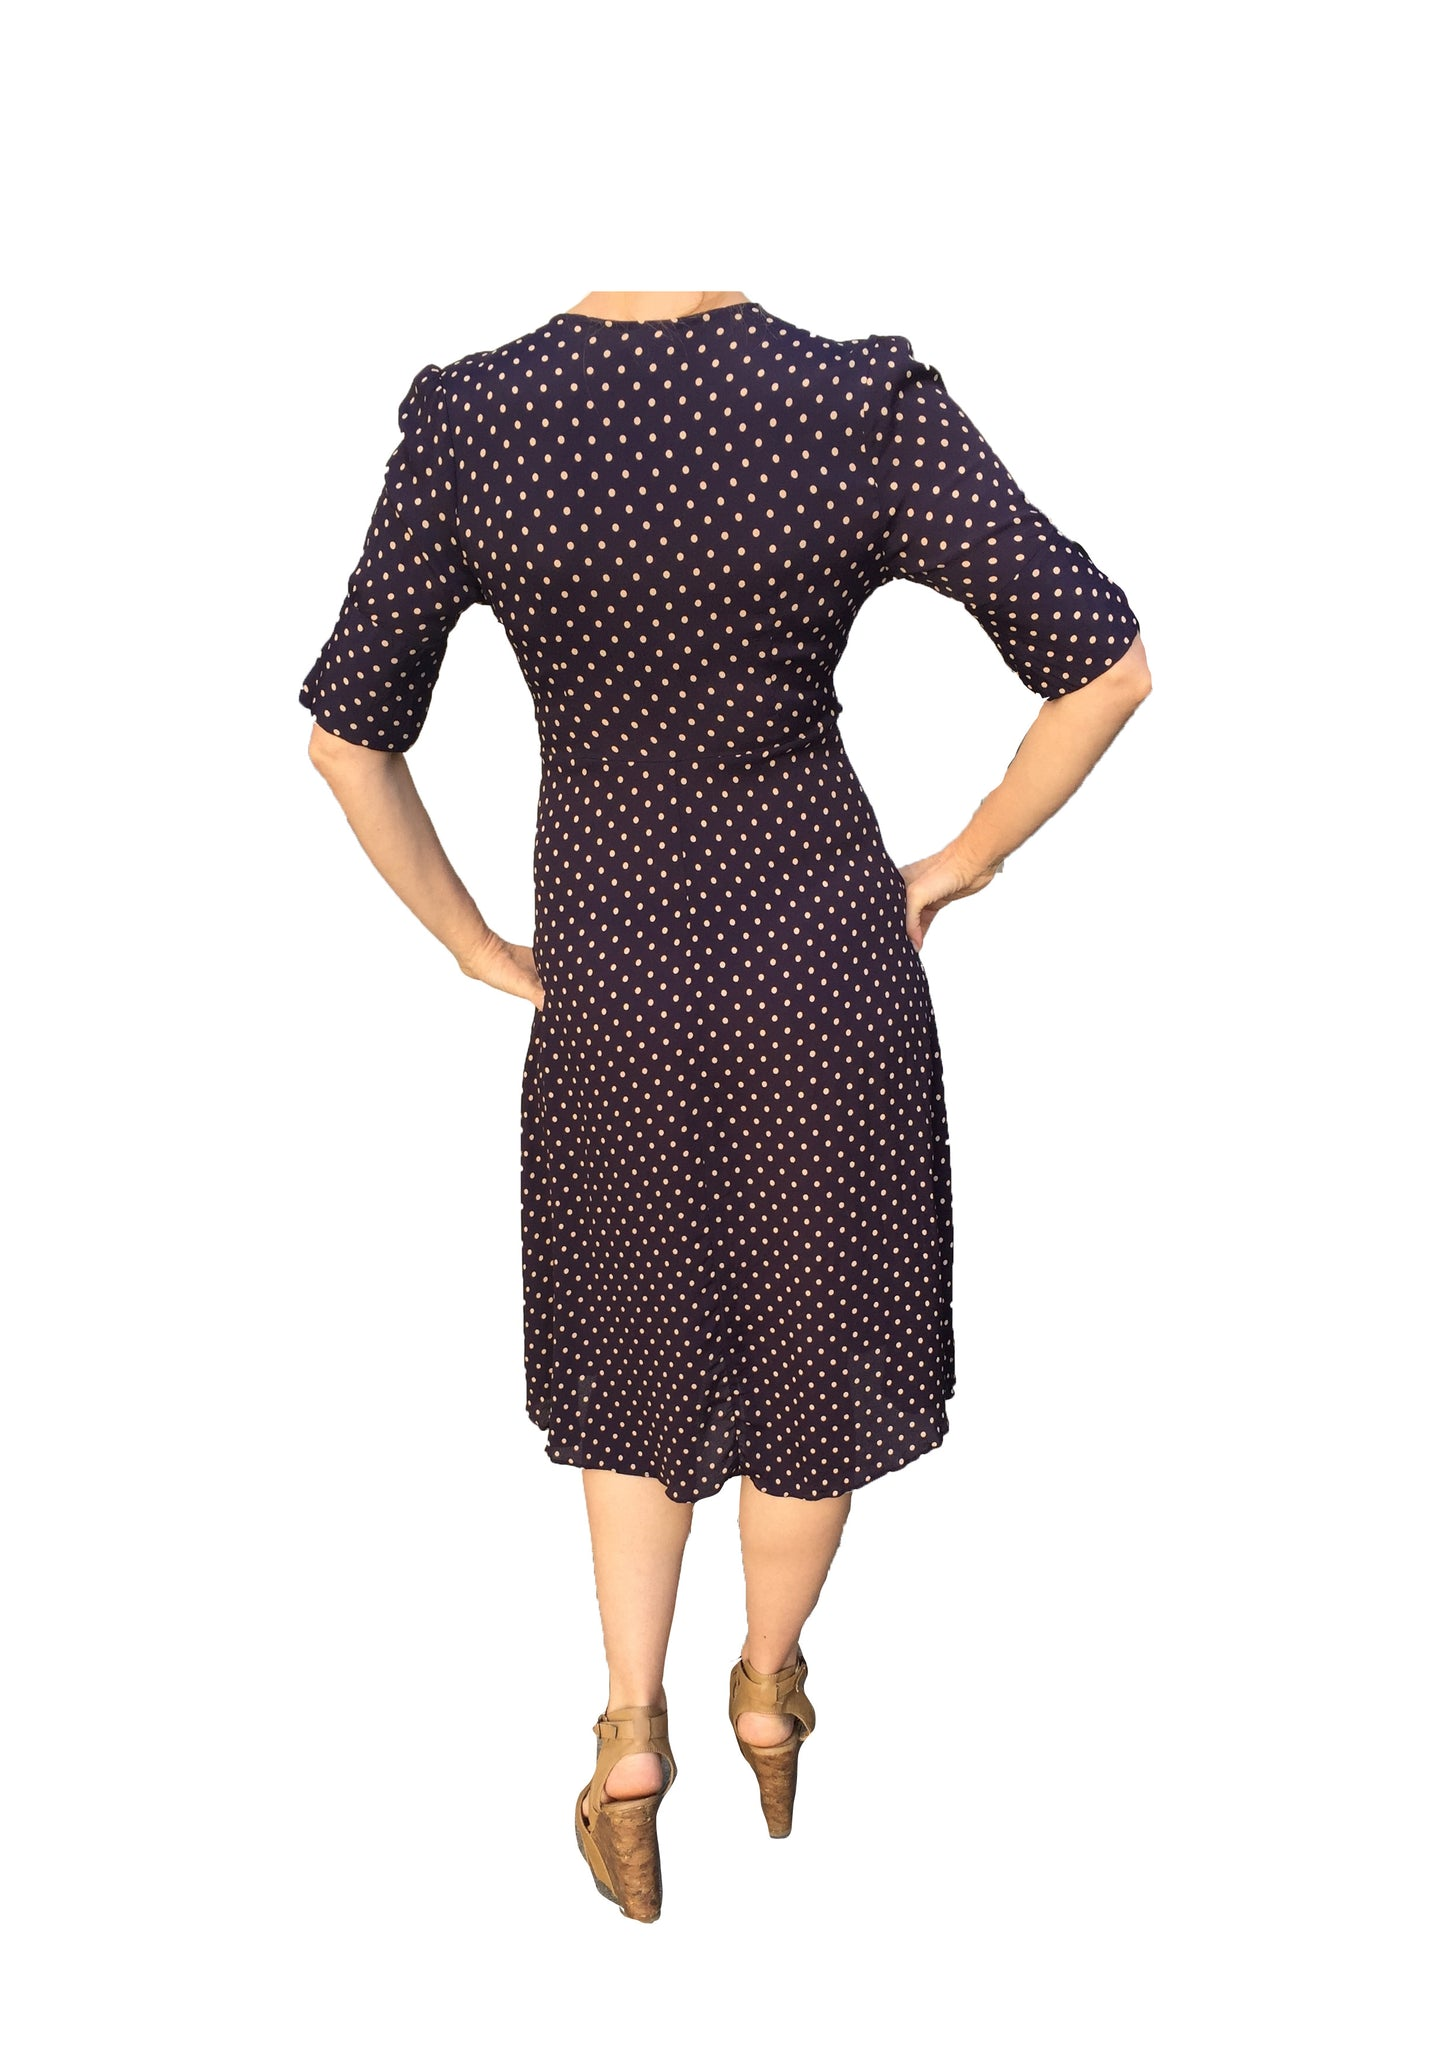 Kristina Dress short sleeve aubergine beige dot